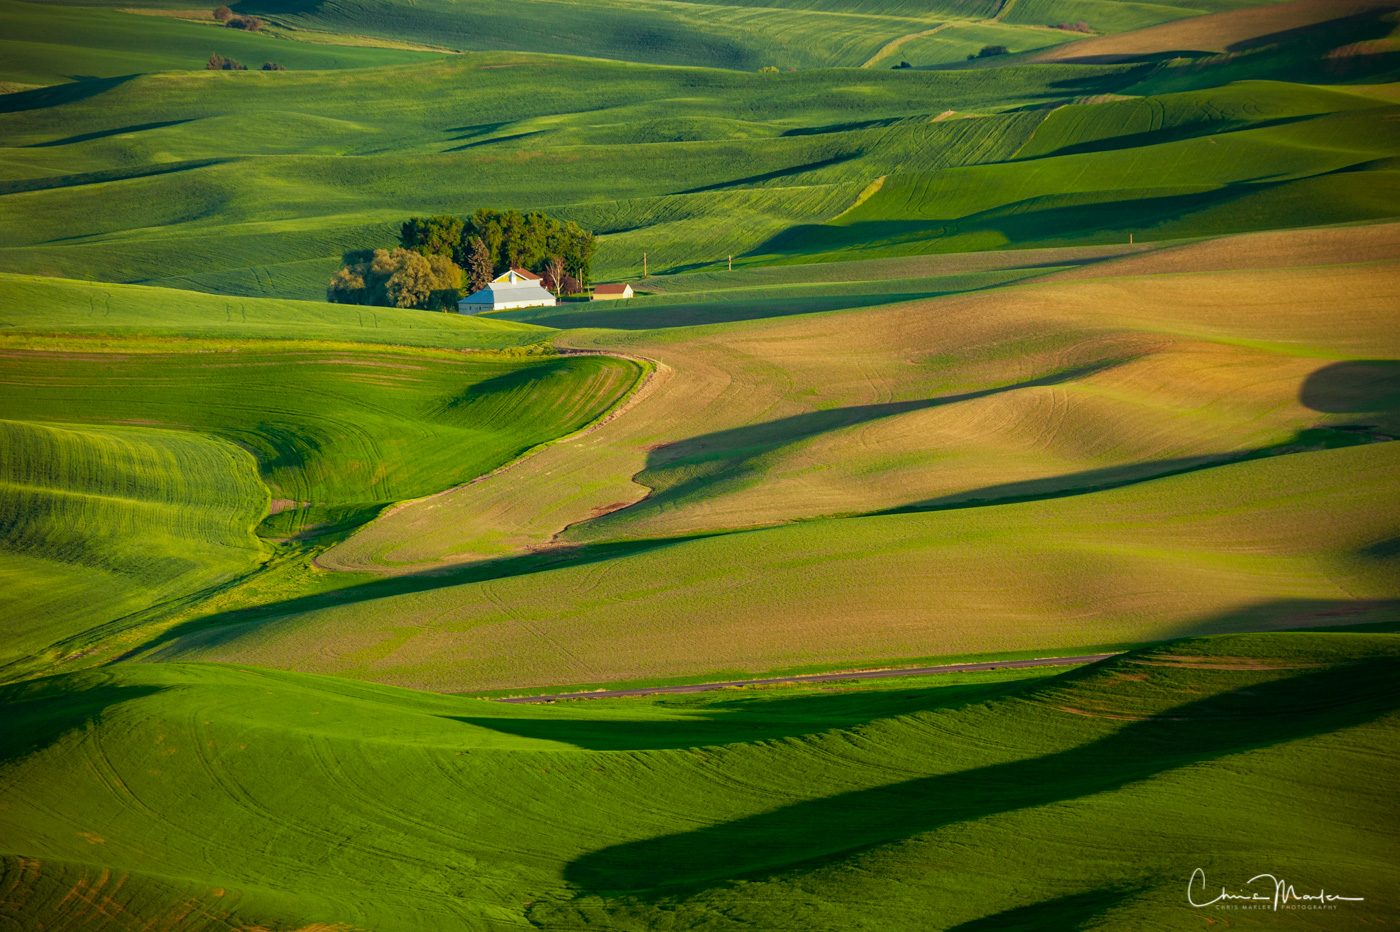 land waves, Palouse, Steptoe Butte, Steptoe Butte State Park, photo